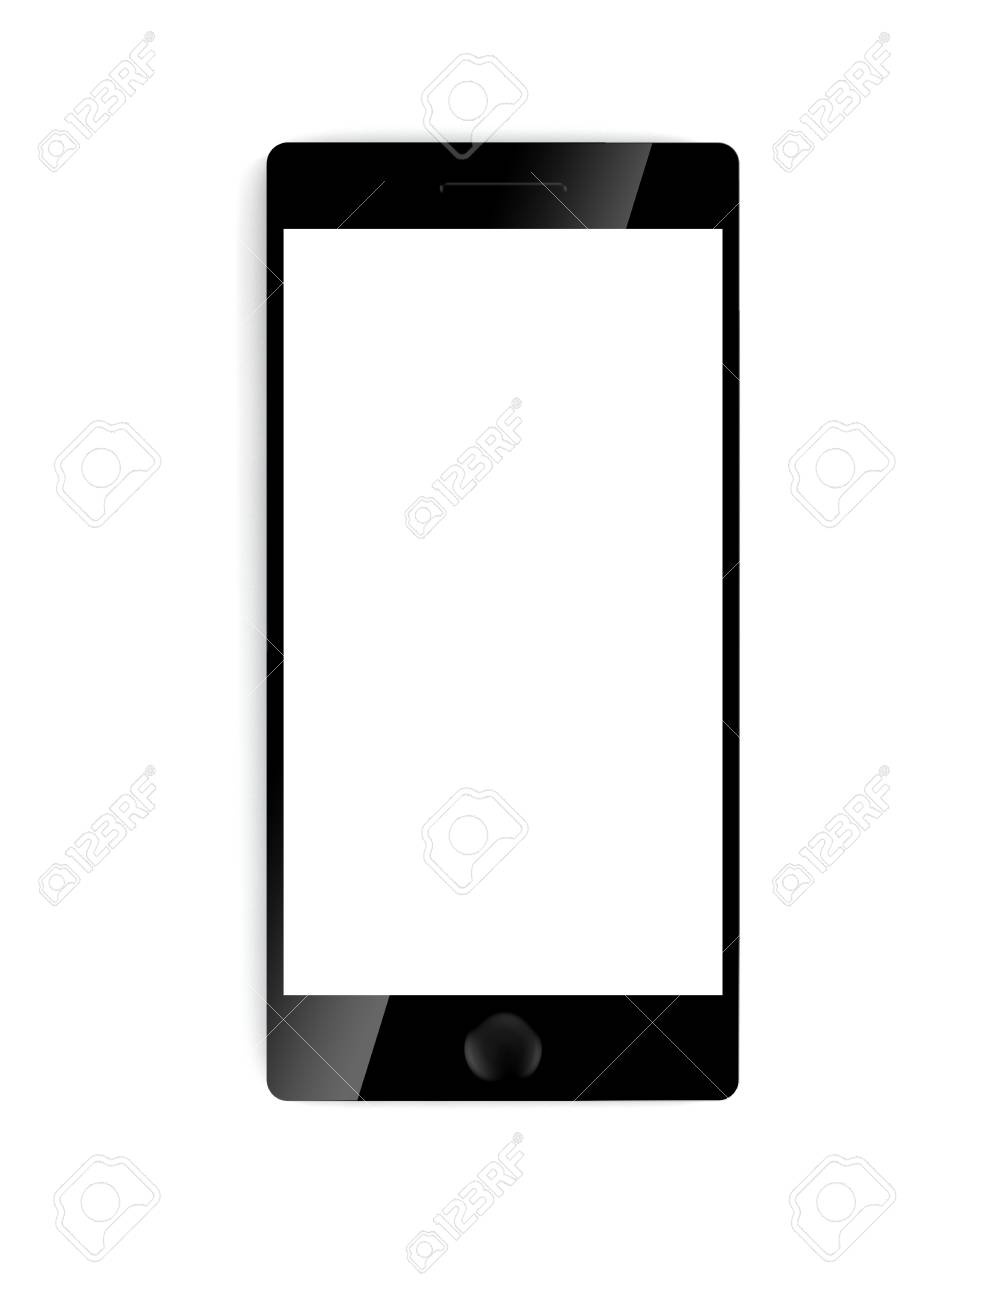 3D illustration of electronic Phone devices isolated on white Stock Illustration - 17671187